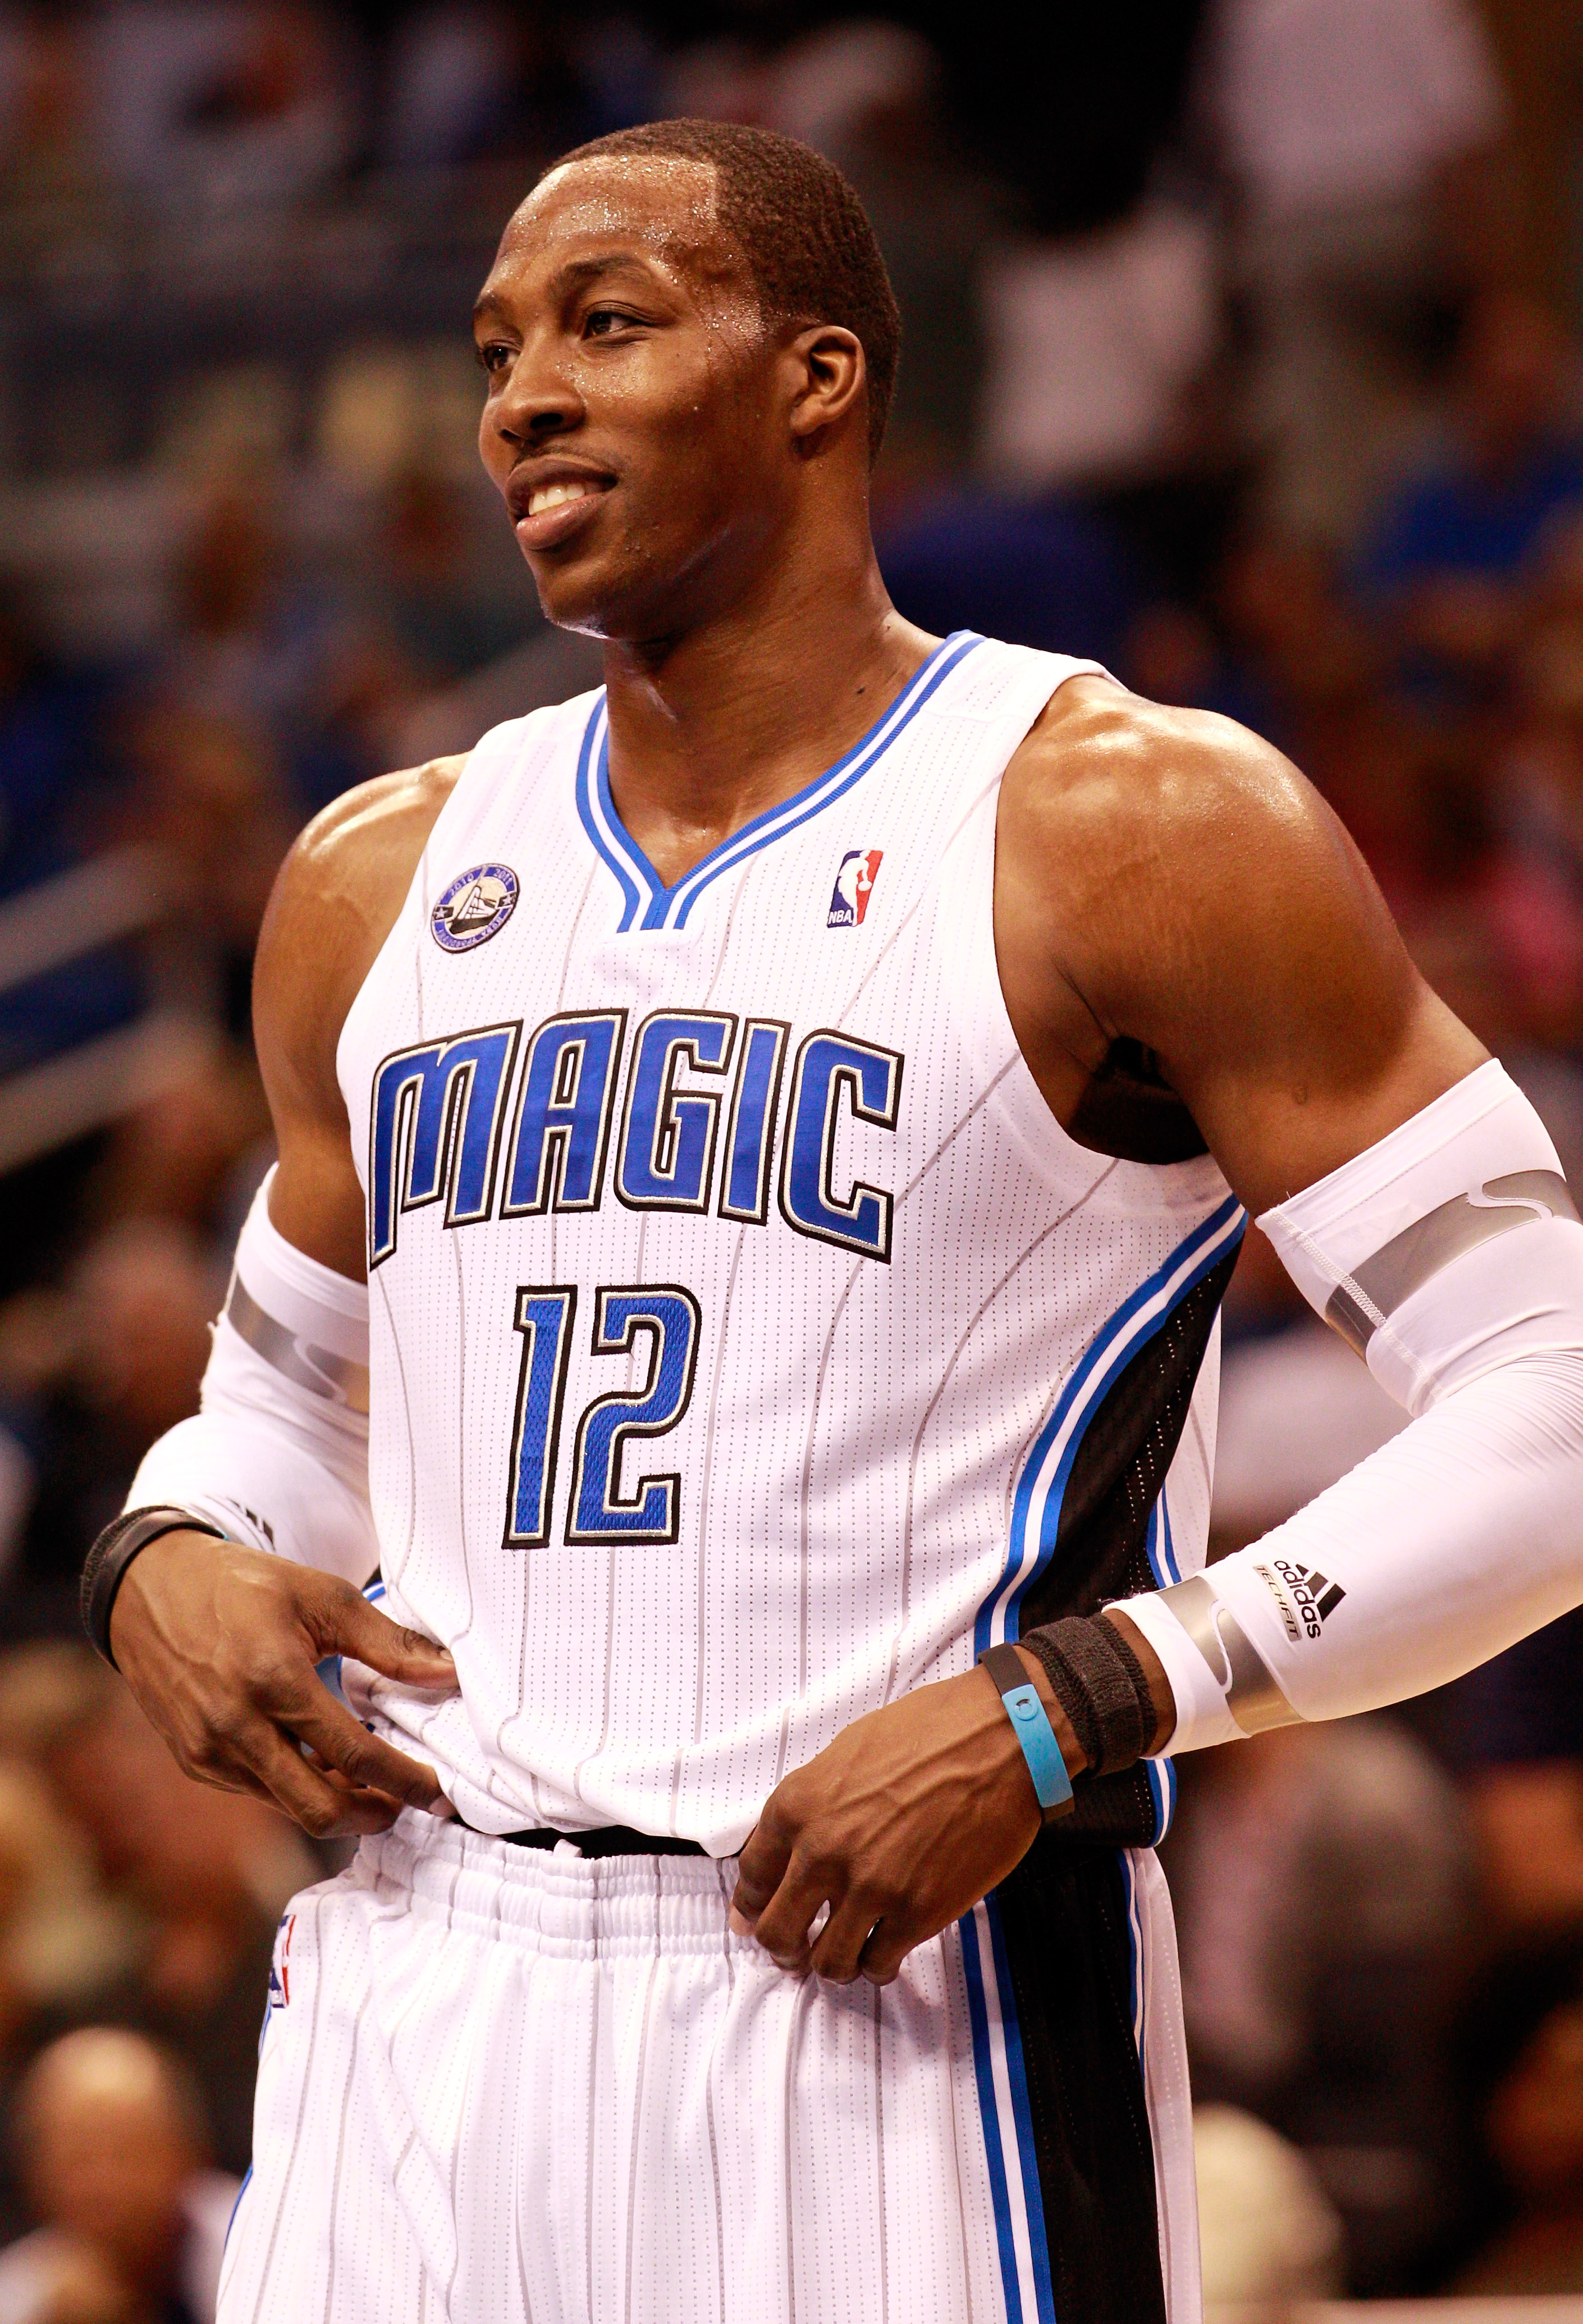 ORLANDO, FL - OCTOBER 10:  Dwight Howard #12 of the Orlando Magic smiles during the game against the New Orleans Hornets at Amway Arena on October 10, 2010 in Orlando, Florida. NOTE TO USER: User expressly acknowledges and agrees that, by downloading and